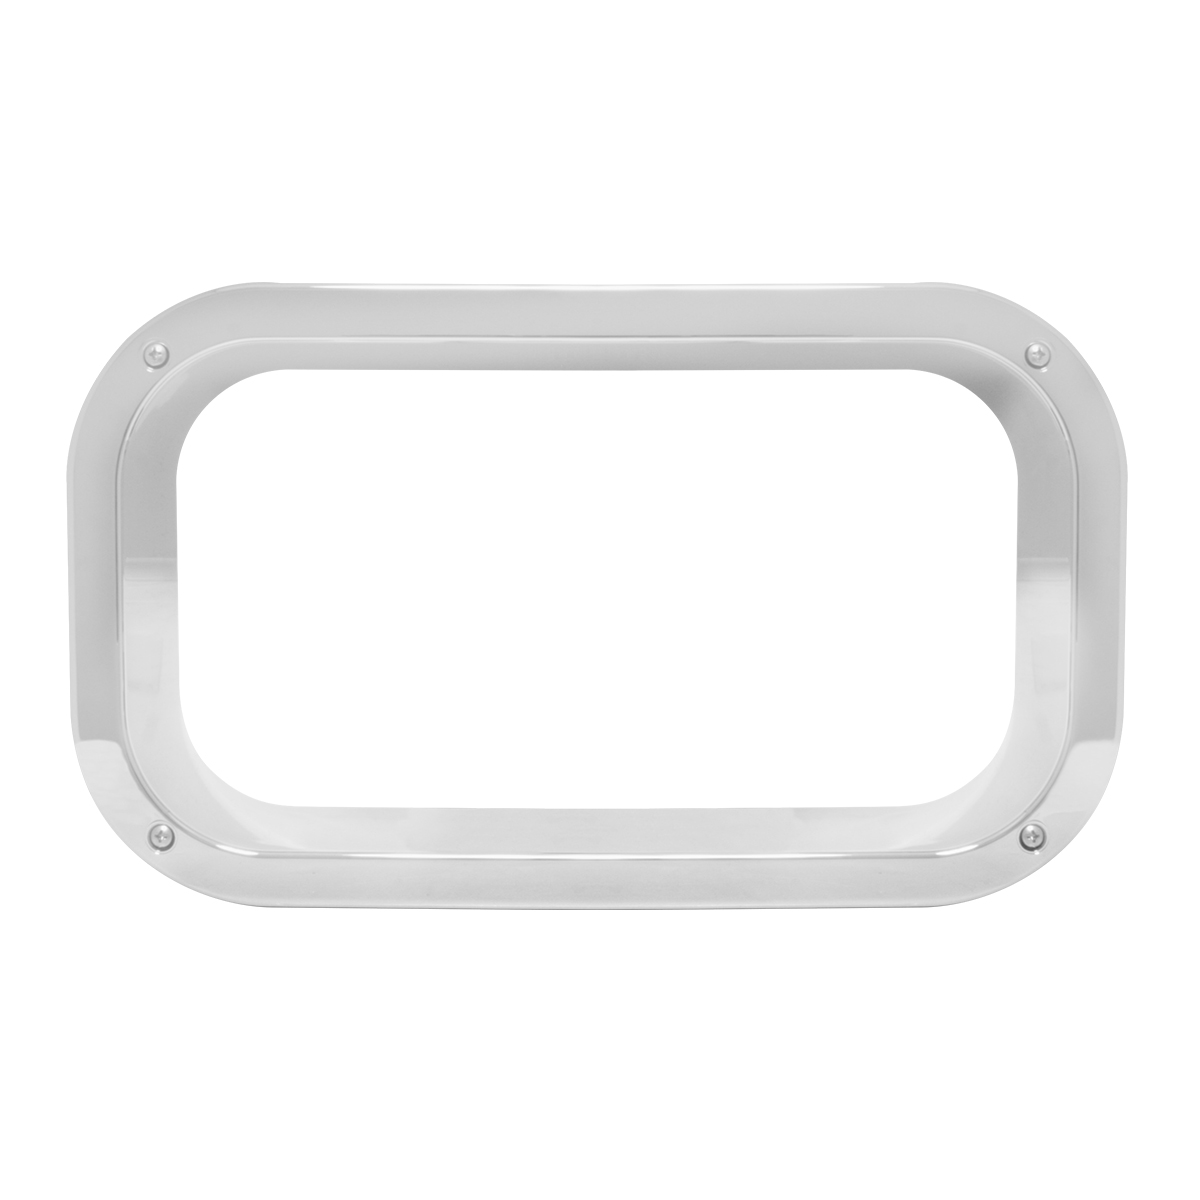 97553 Inside Cab Door View Window for Kenworth